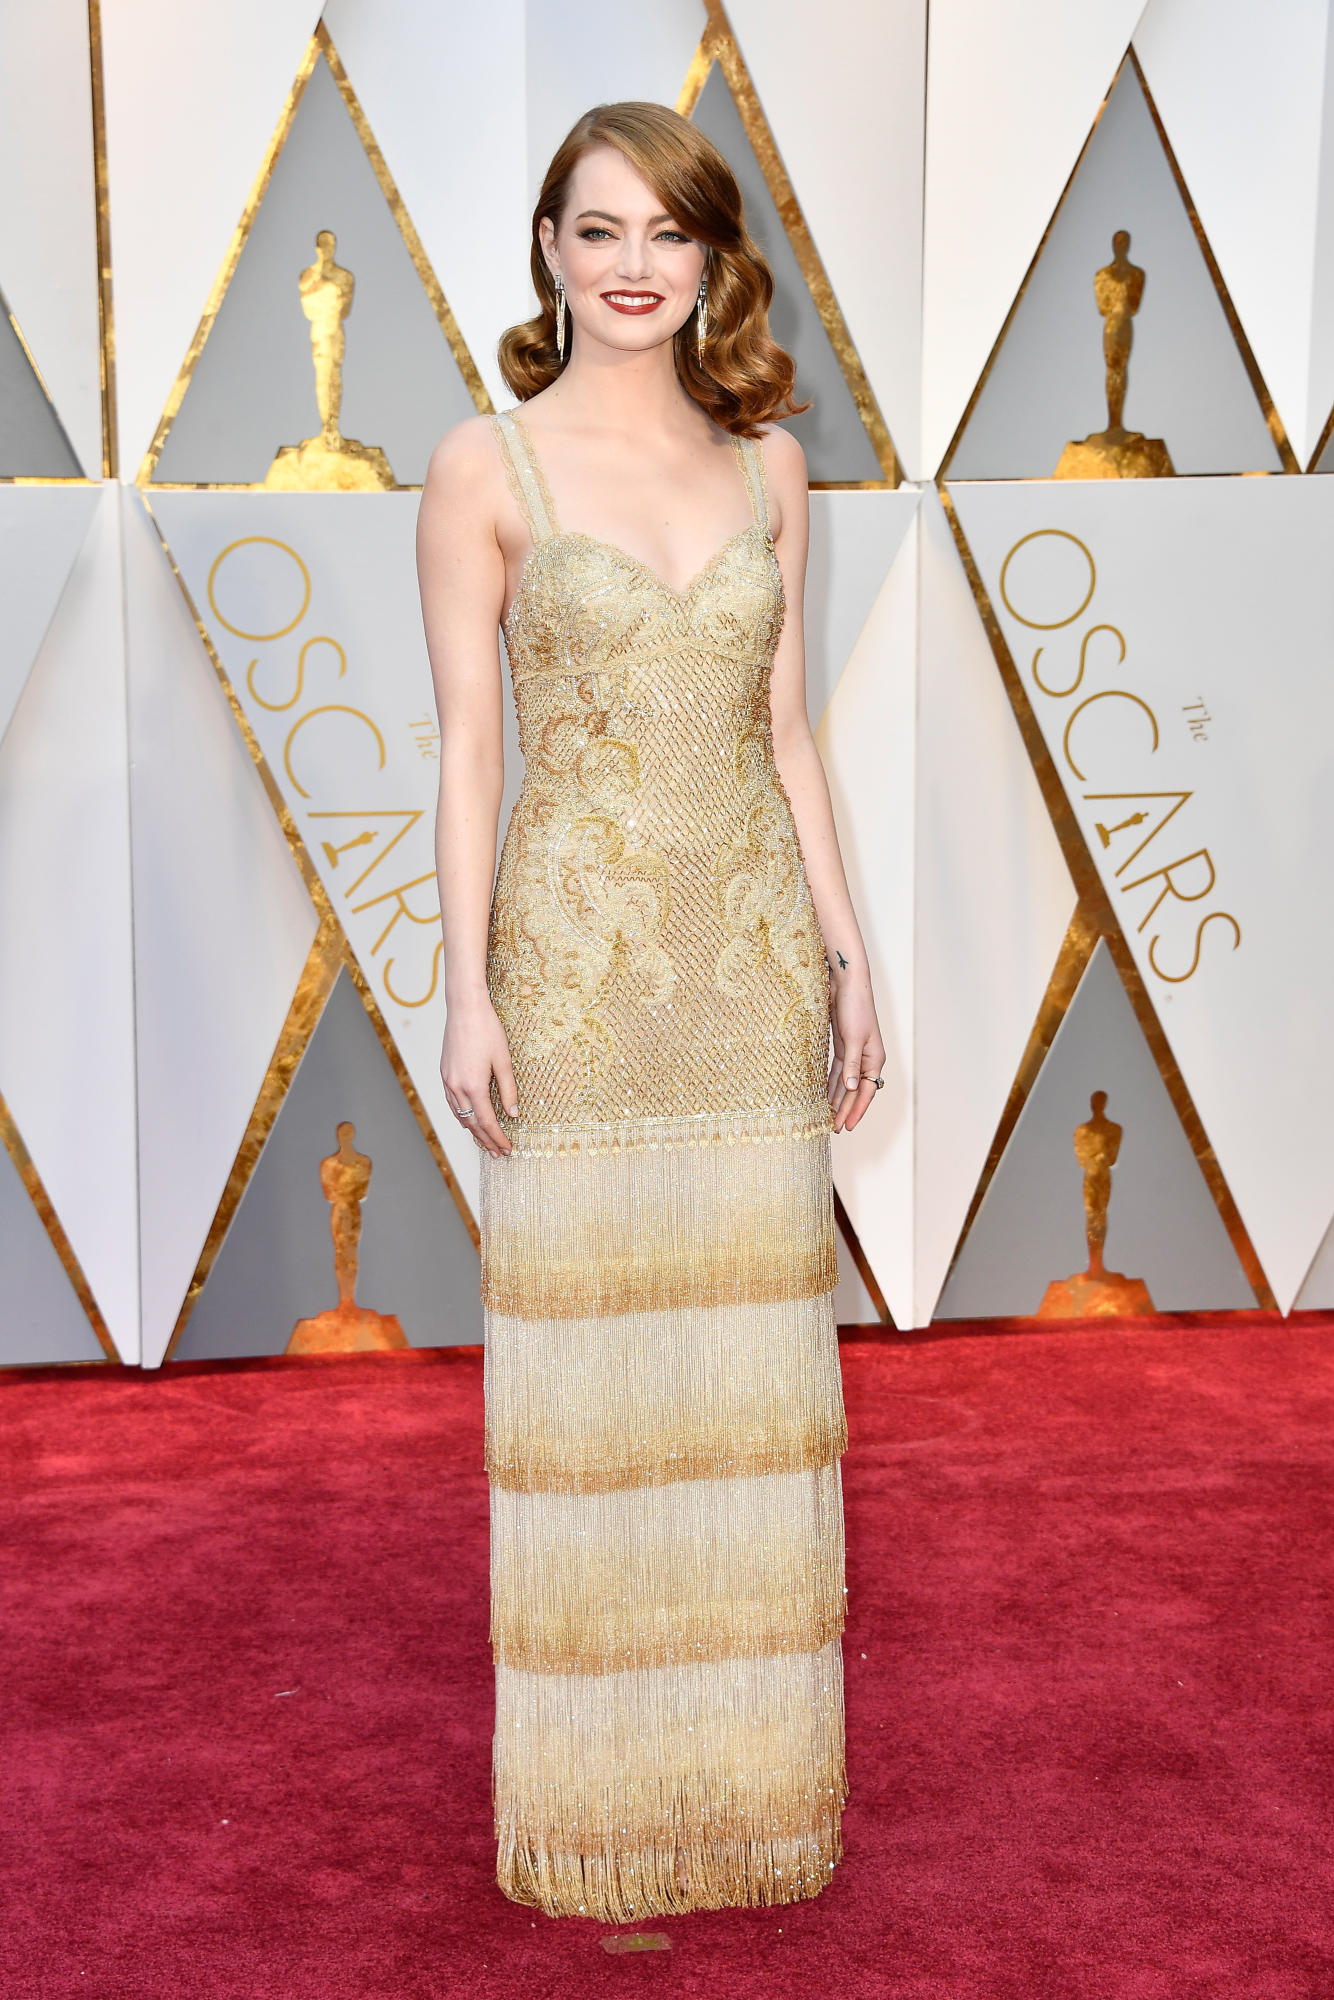 Just perfect! Emma Stone in Givenchy Haute Couture